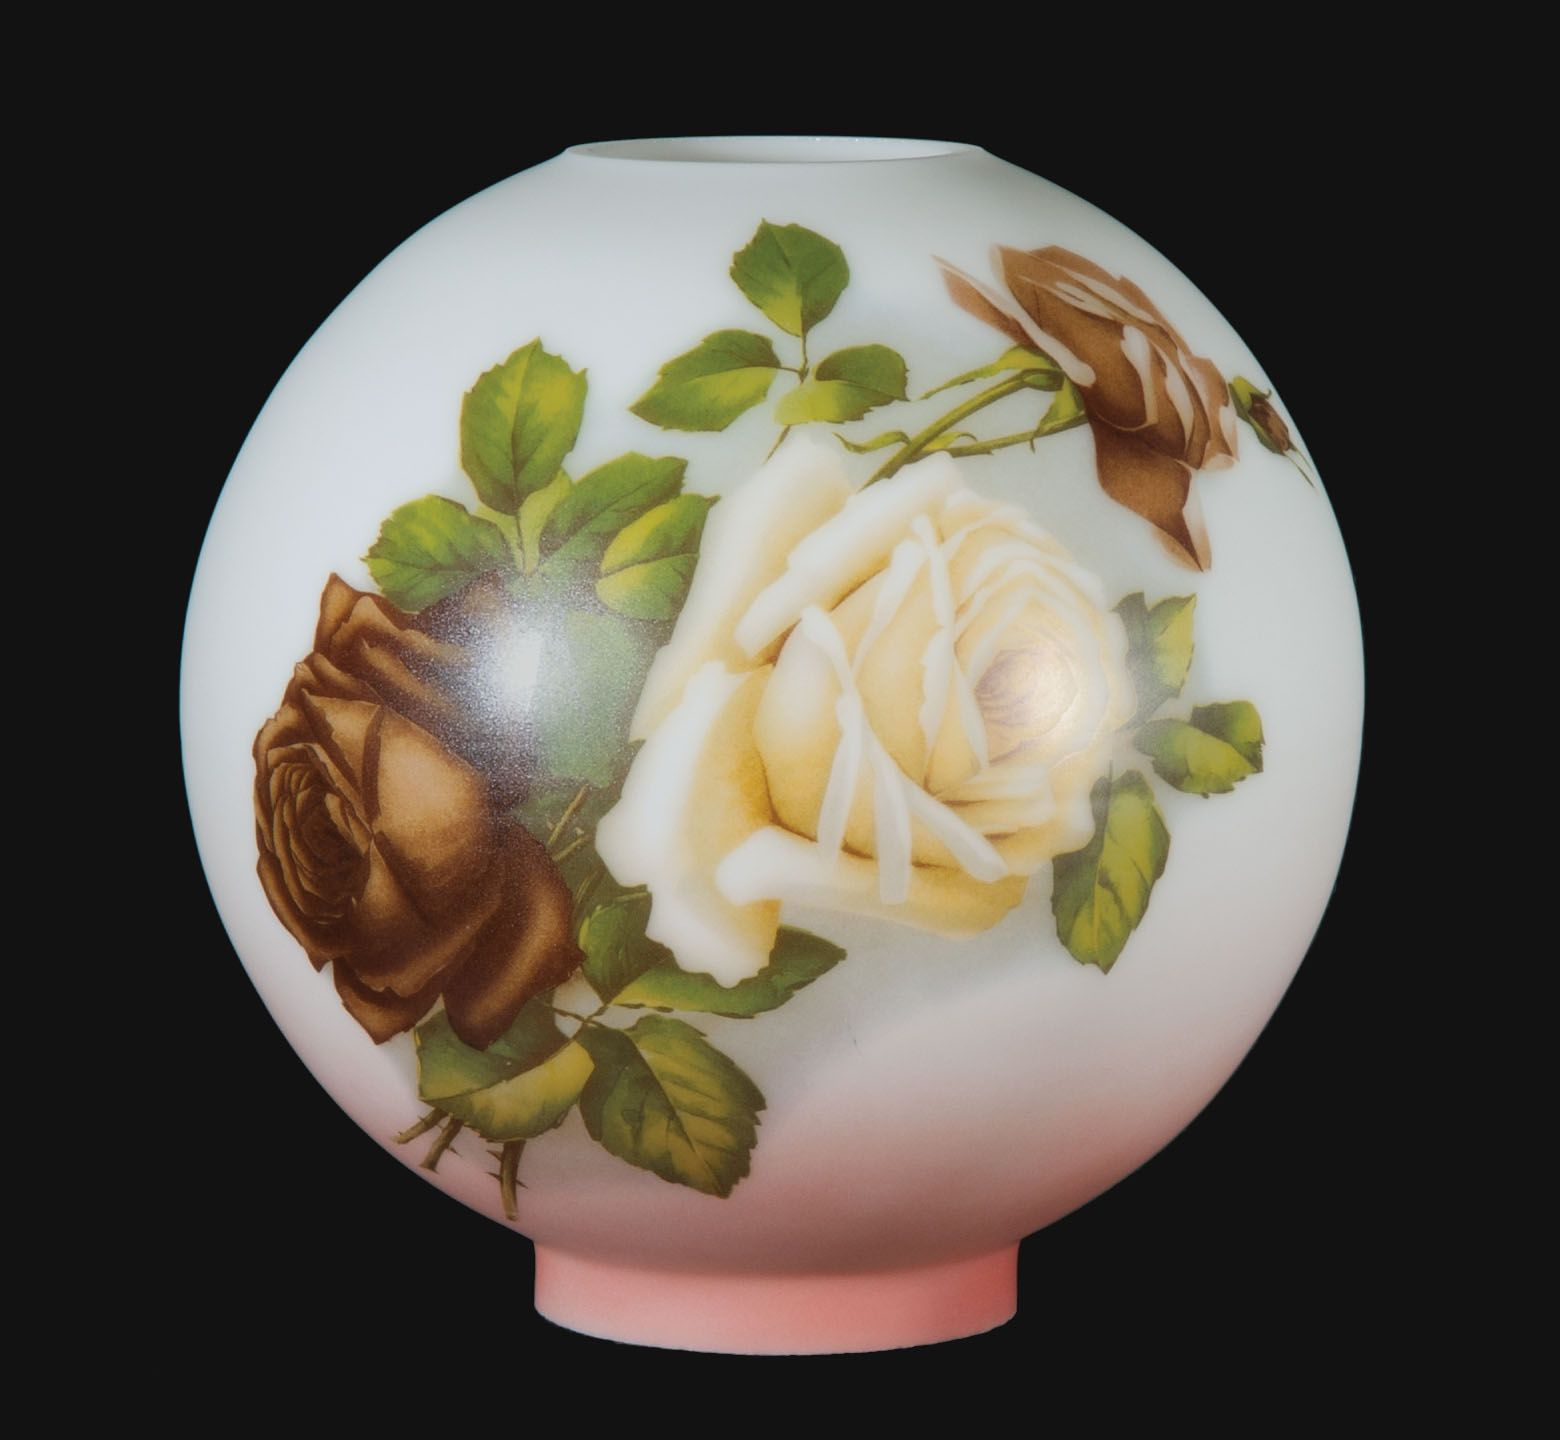 10 Inch Diameter Hand Painted Opal Glass Ball Lamp Shade English Roses Scene 4 Inch Fitter Ball Lamps Glass Ball English Roses